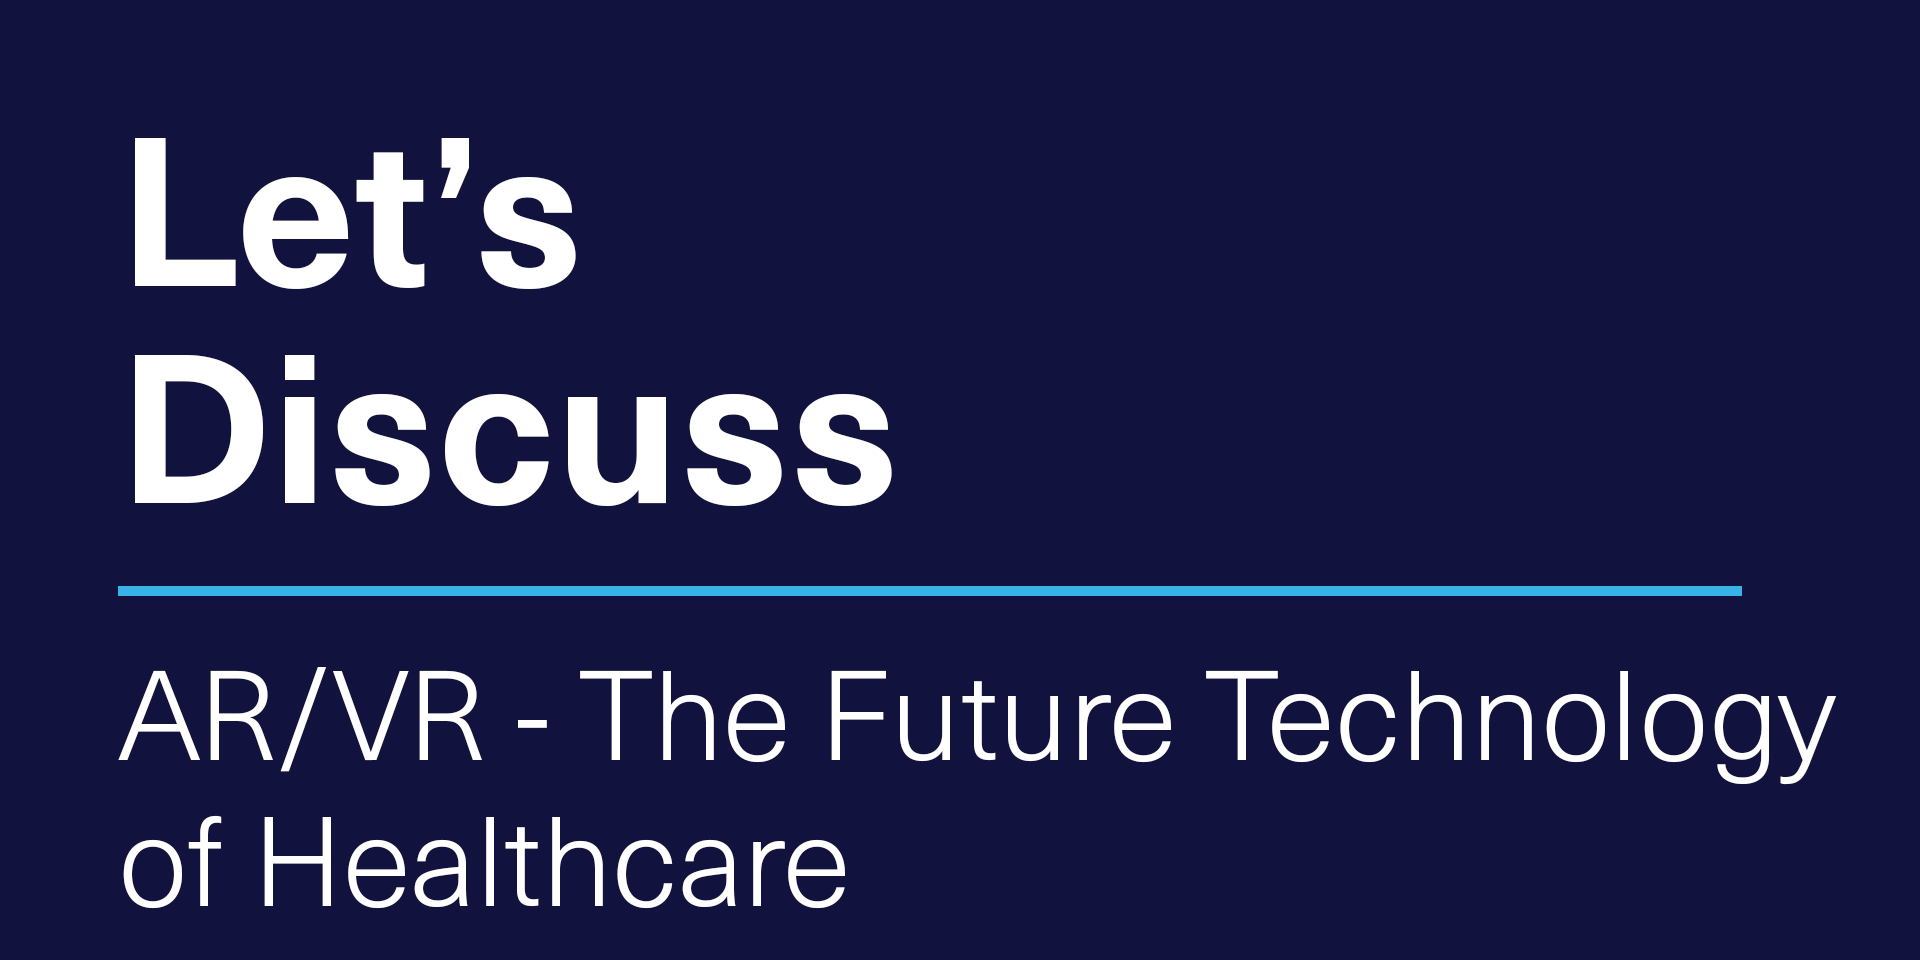 [VIRTUAL] Let's Discuss | AR/VR - The Future Technology of Healthcare